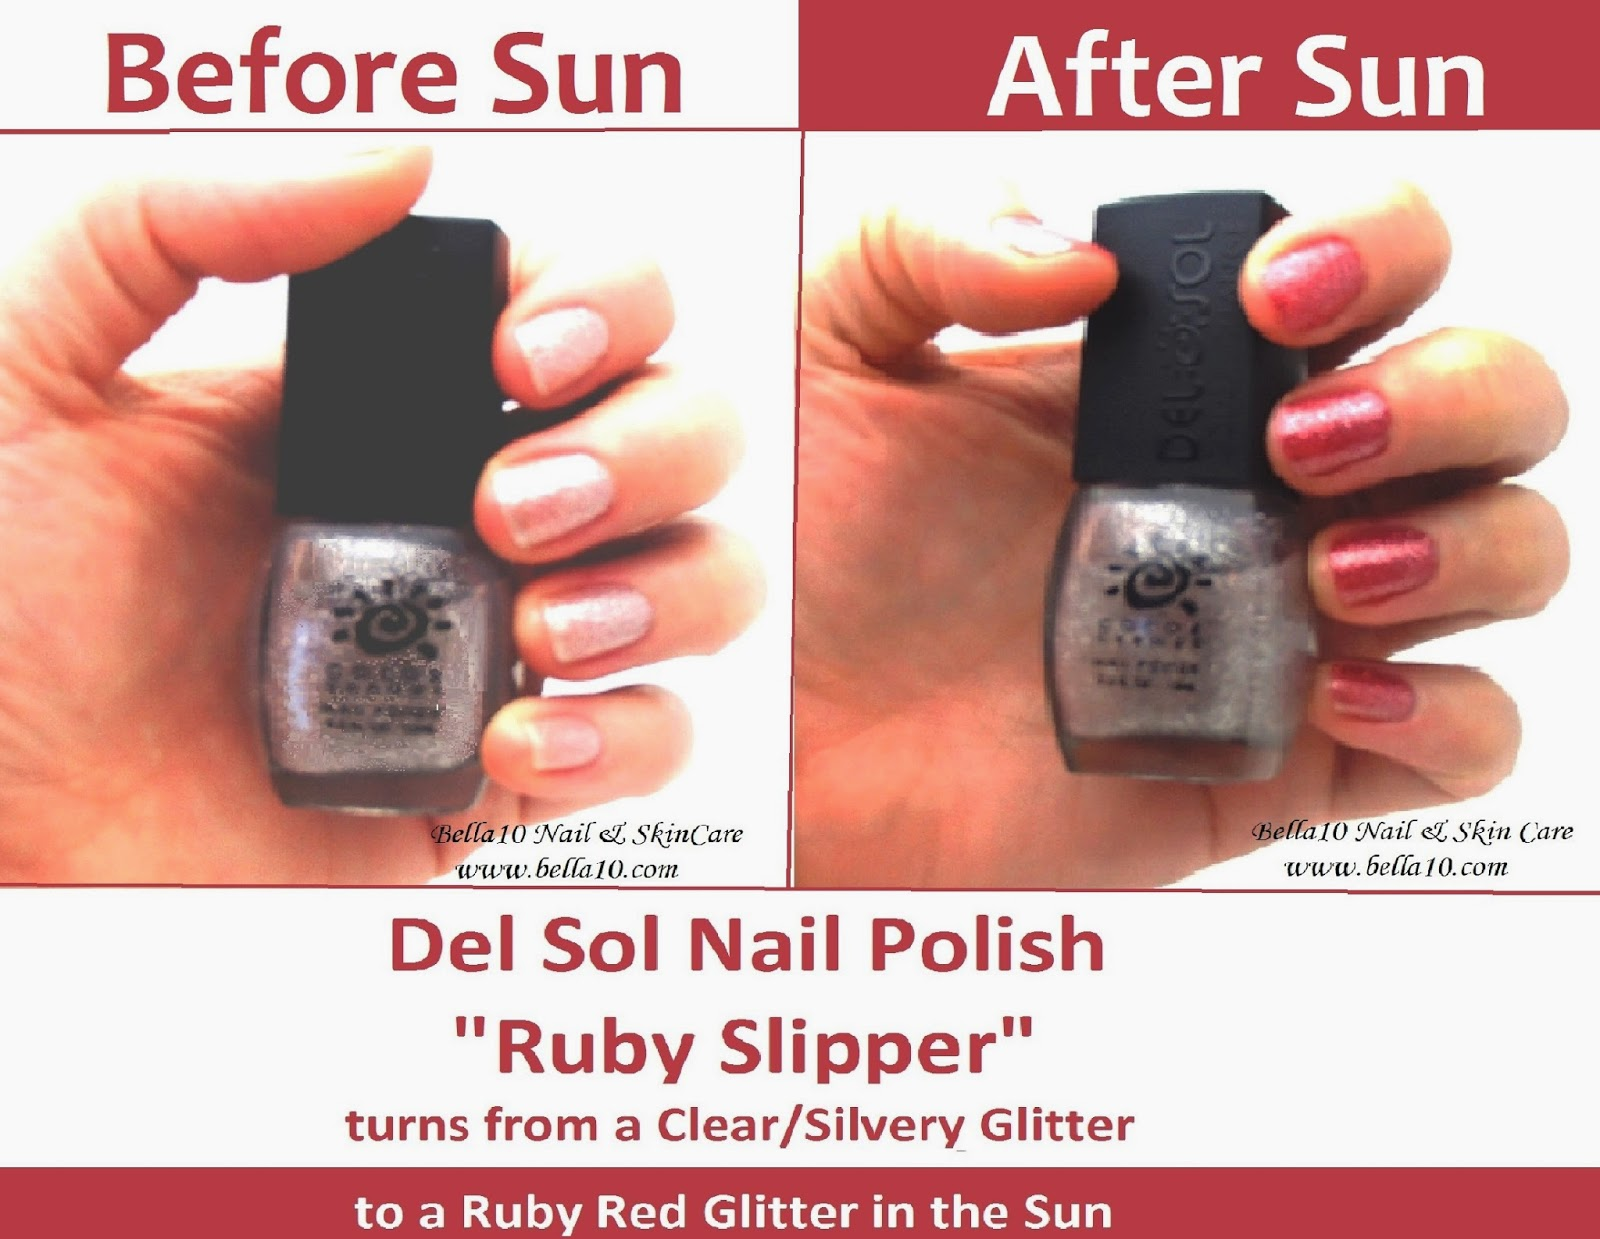 Bella10 Nails: Fun in the Sun - Color Changing Polish! - Part 1